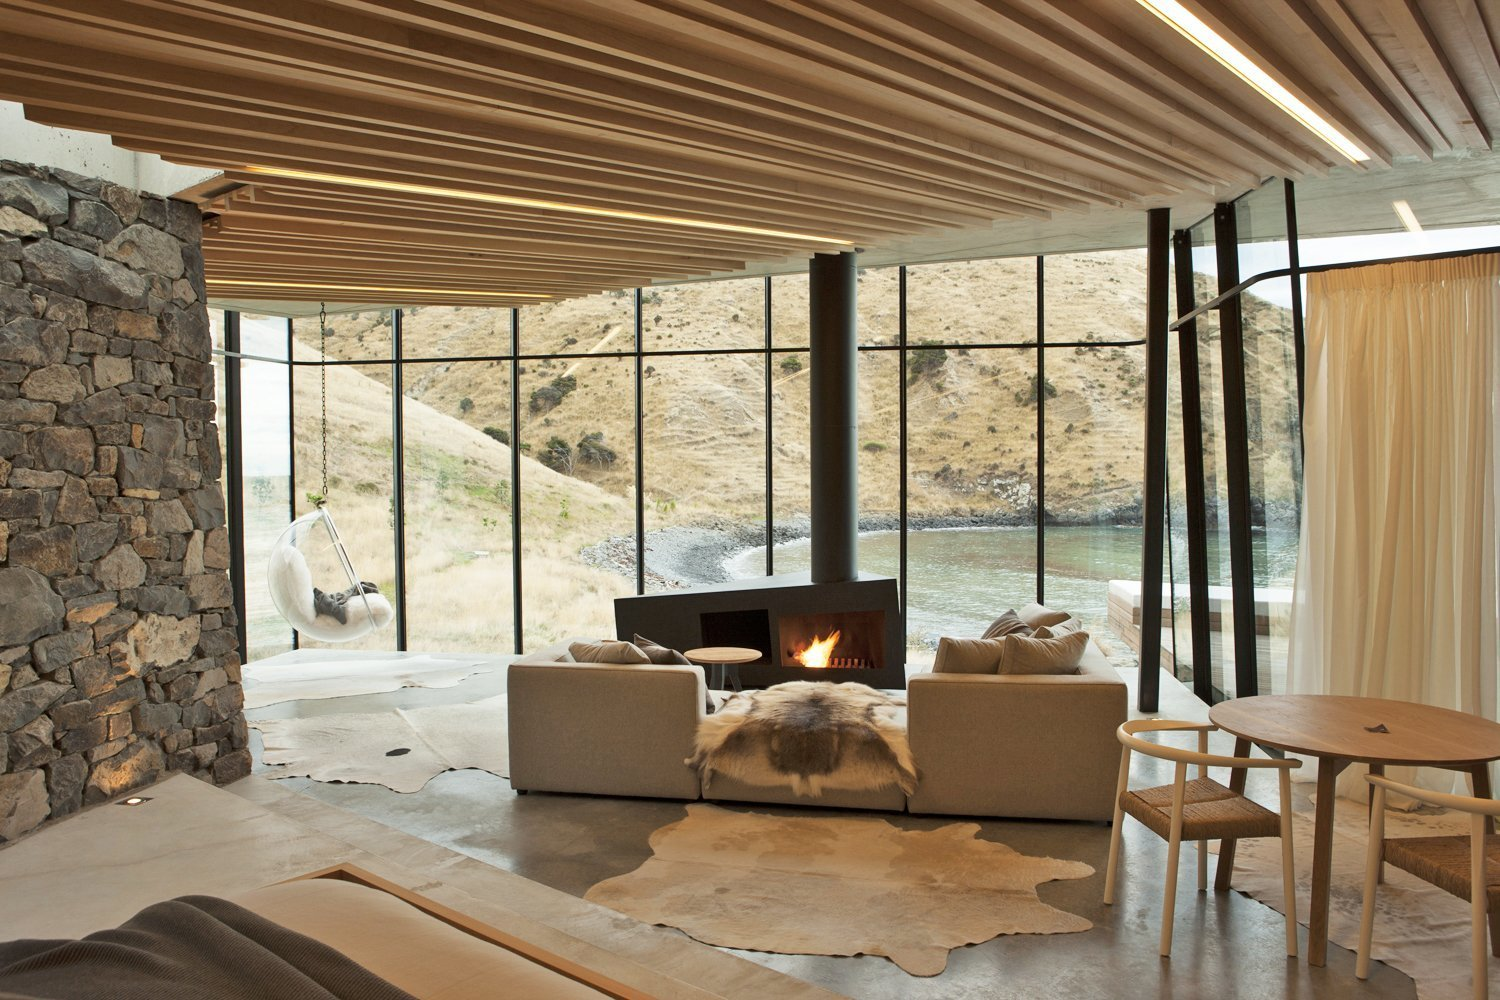 In this remote holiday rental home in New Zealand, guests can warm themselves by the asymmetrically shaped fireplace while looking out to views of a gorgeous, deserted by.  Photo 6 of 10 in 10 Modern Fireplaces That Make For Inviting Interiors